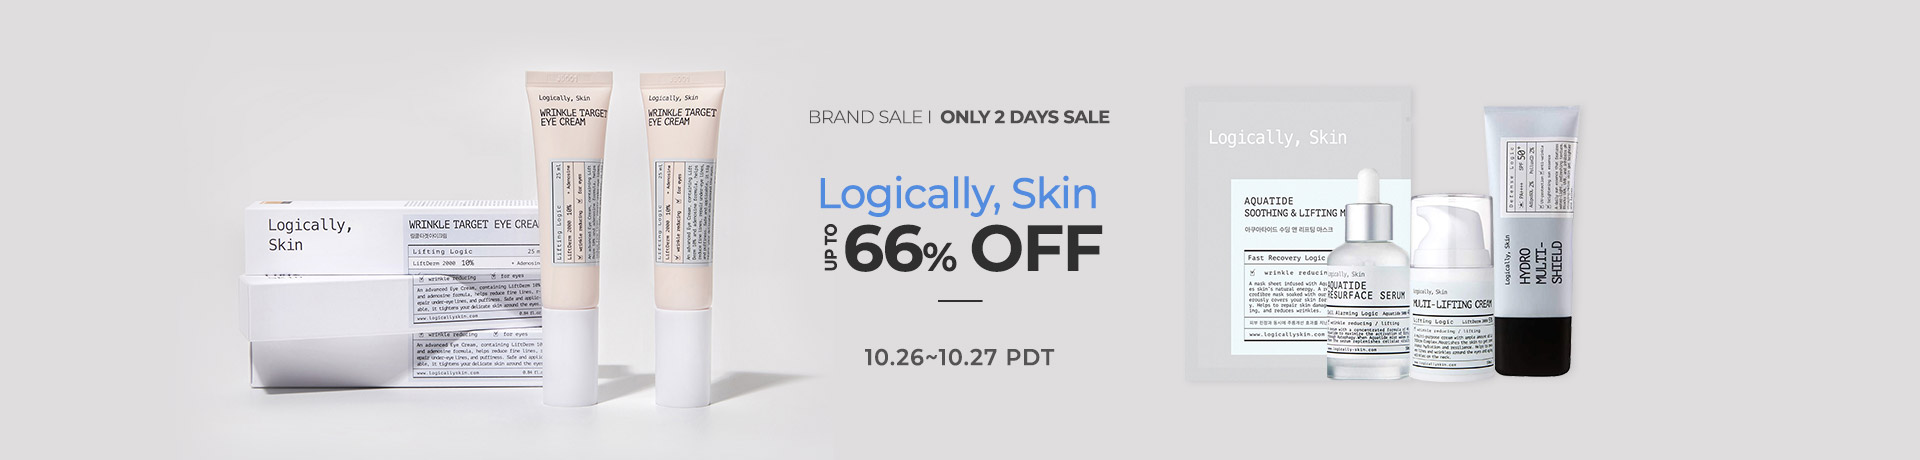 Logically, Skin Up to 66% OFF